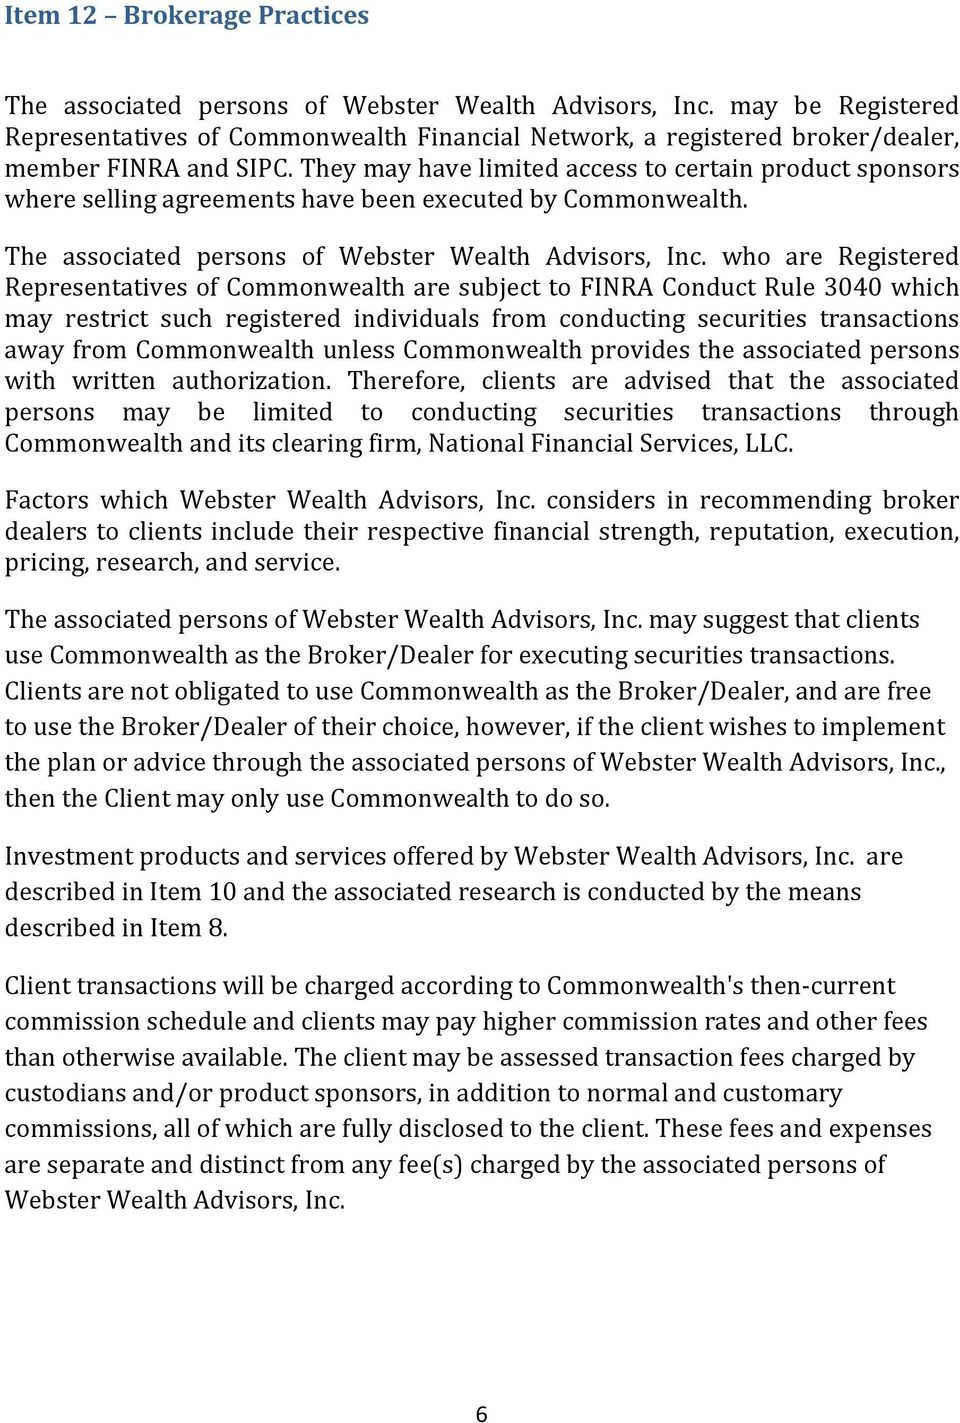 They may have limited access to certain product sponsors where selling agreements have been executed by Commonwealth. The associated persons of Webster Wealth Advisors, Inc.